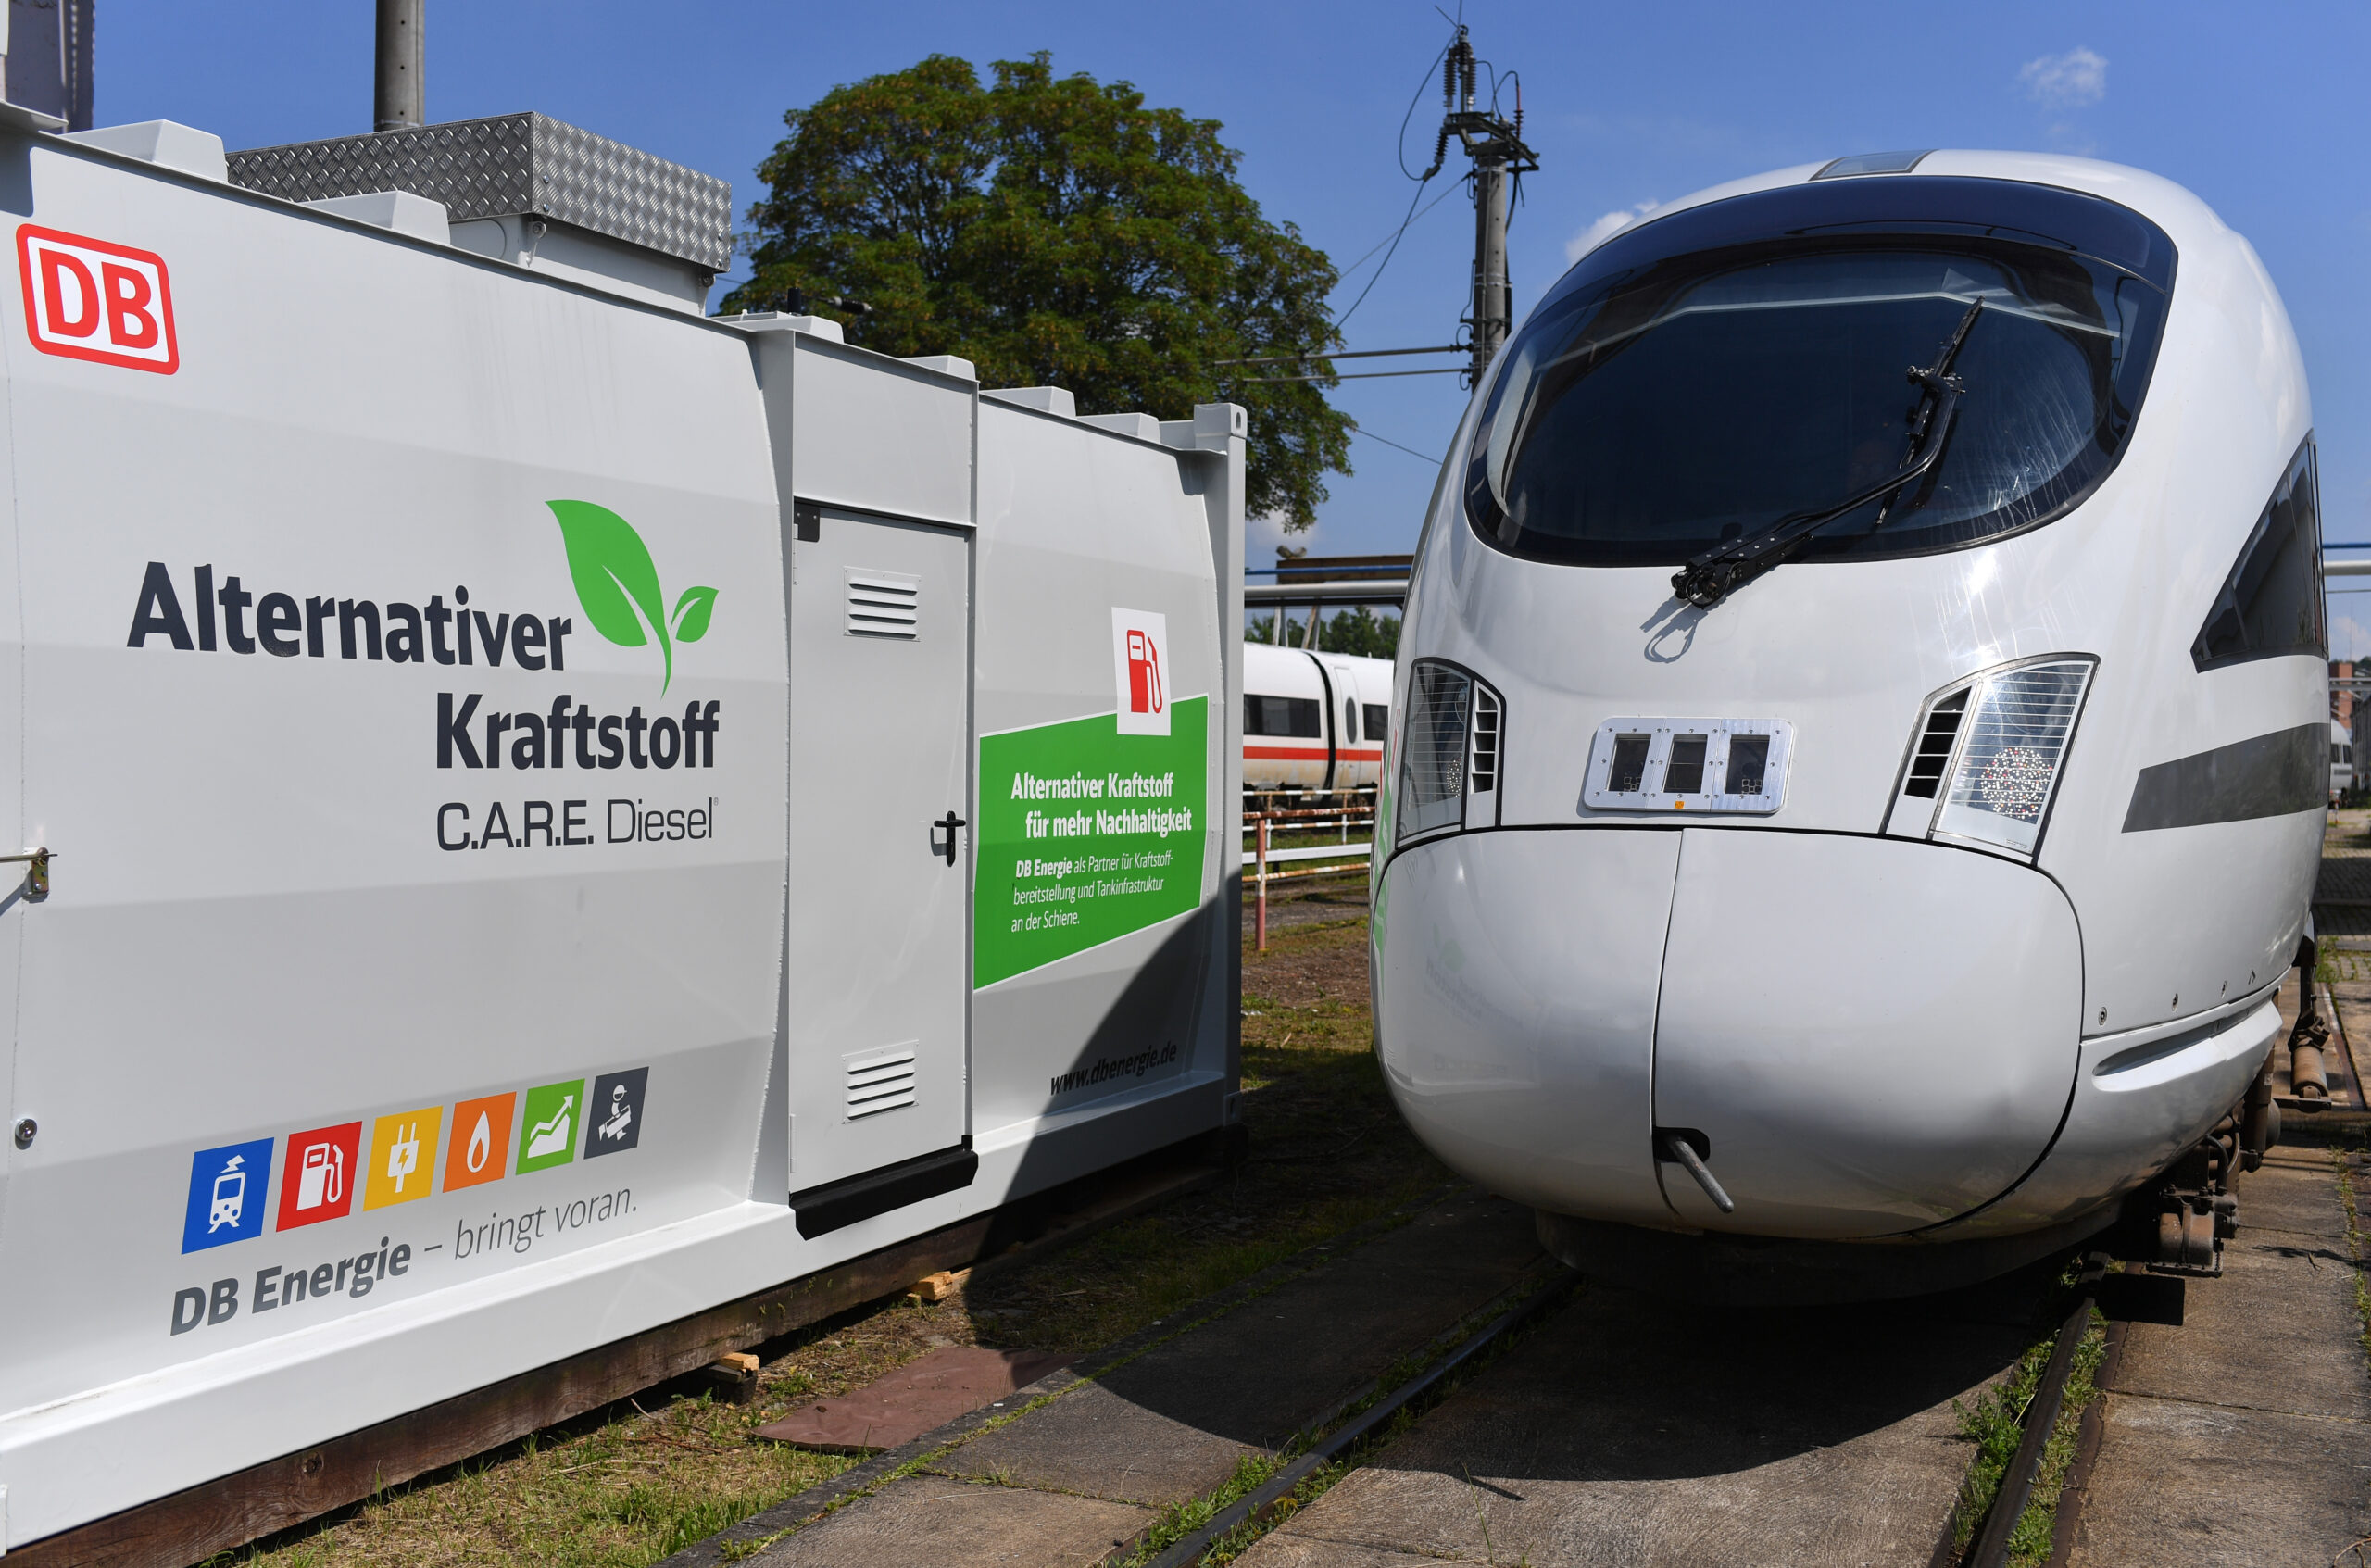 DB to eliminate diesel fuel in its vehicles by 2050